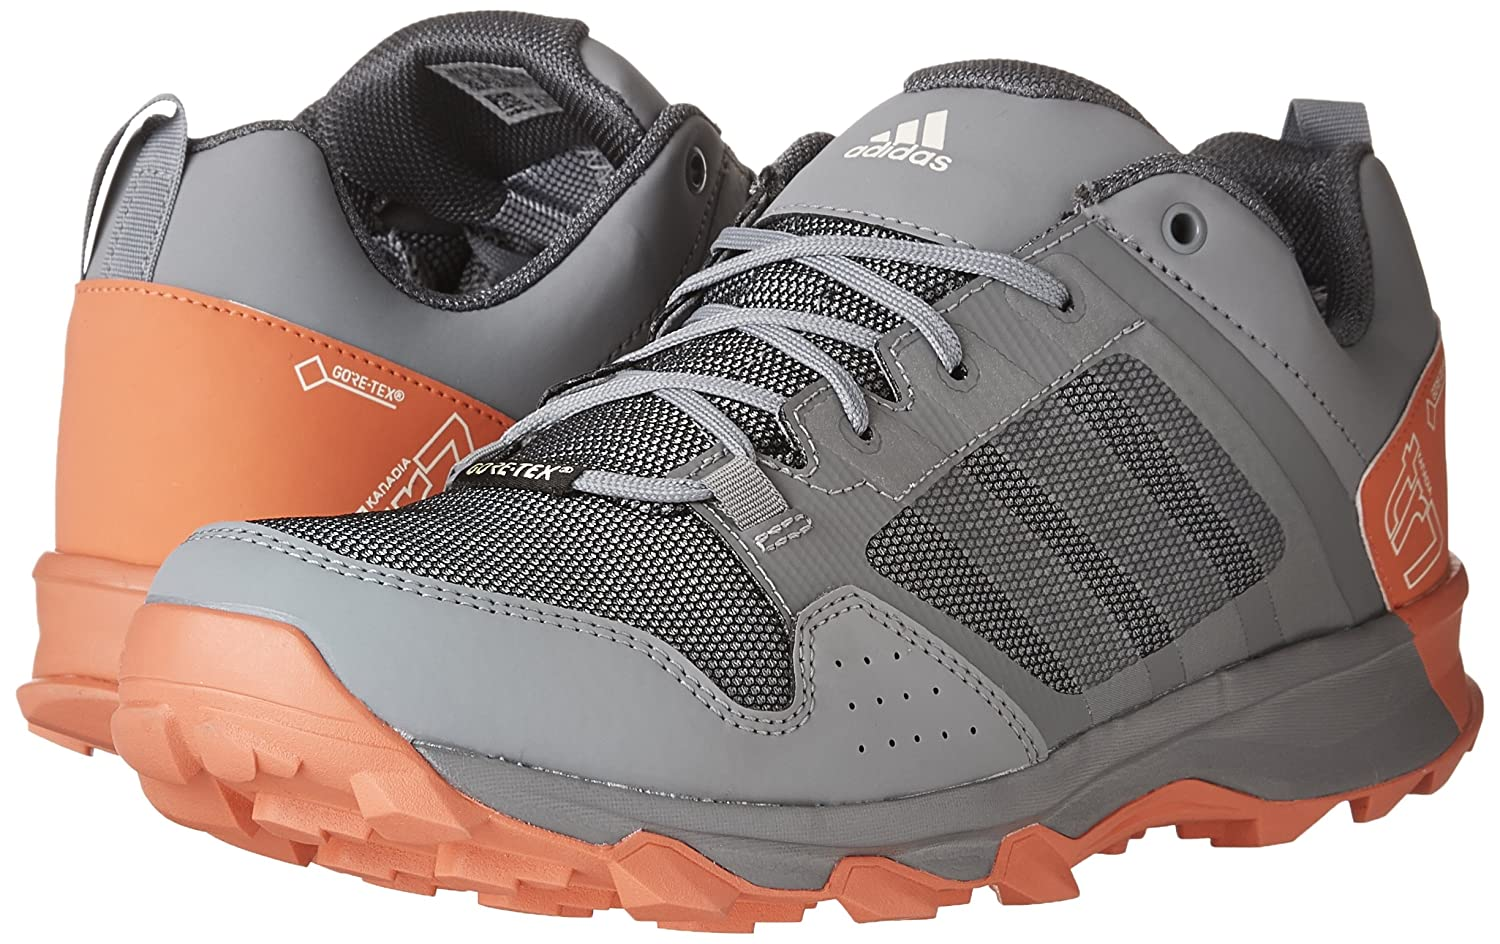 adidas outdoor Women's Kanadia 7 Gore-Tex Trail Running Shoe B01MS4I1AG 9.5 M US|Grey Two/Chalk White/Easy Coral